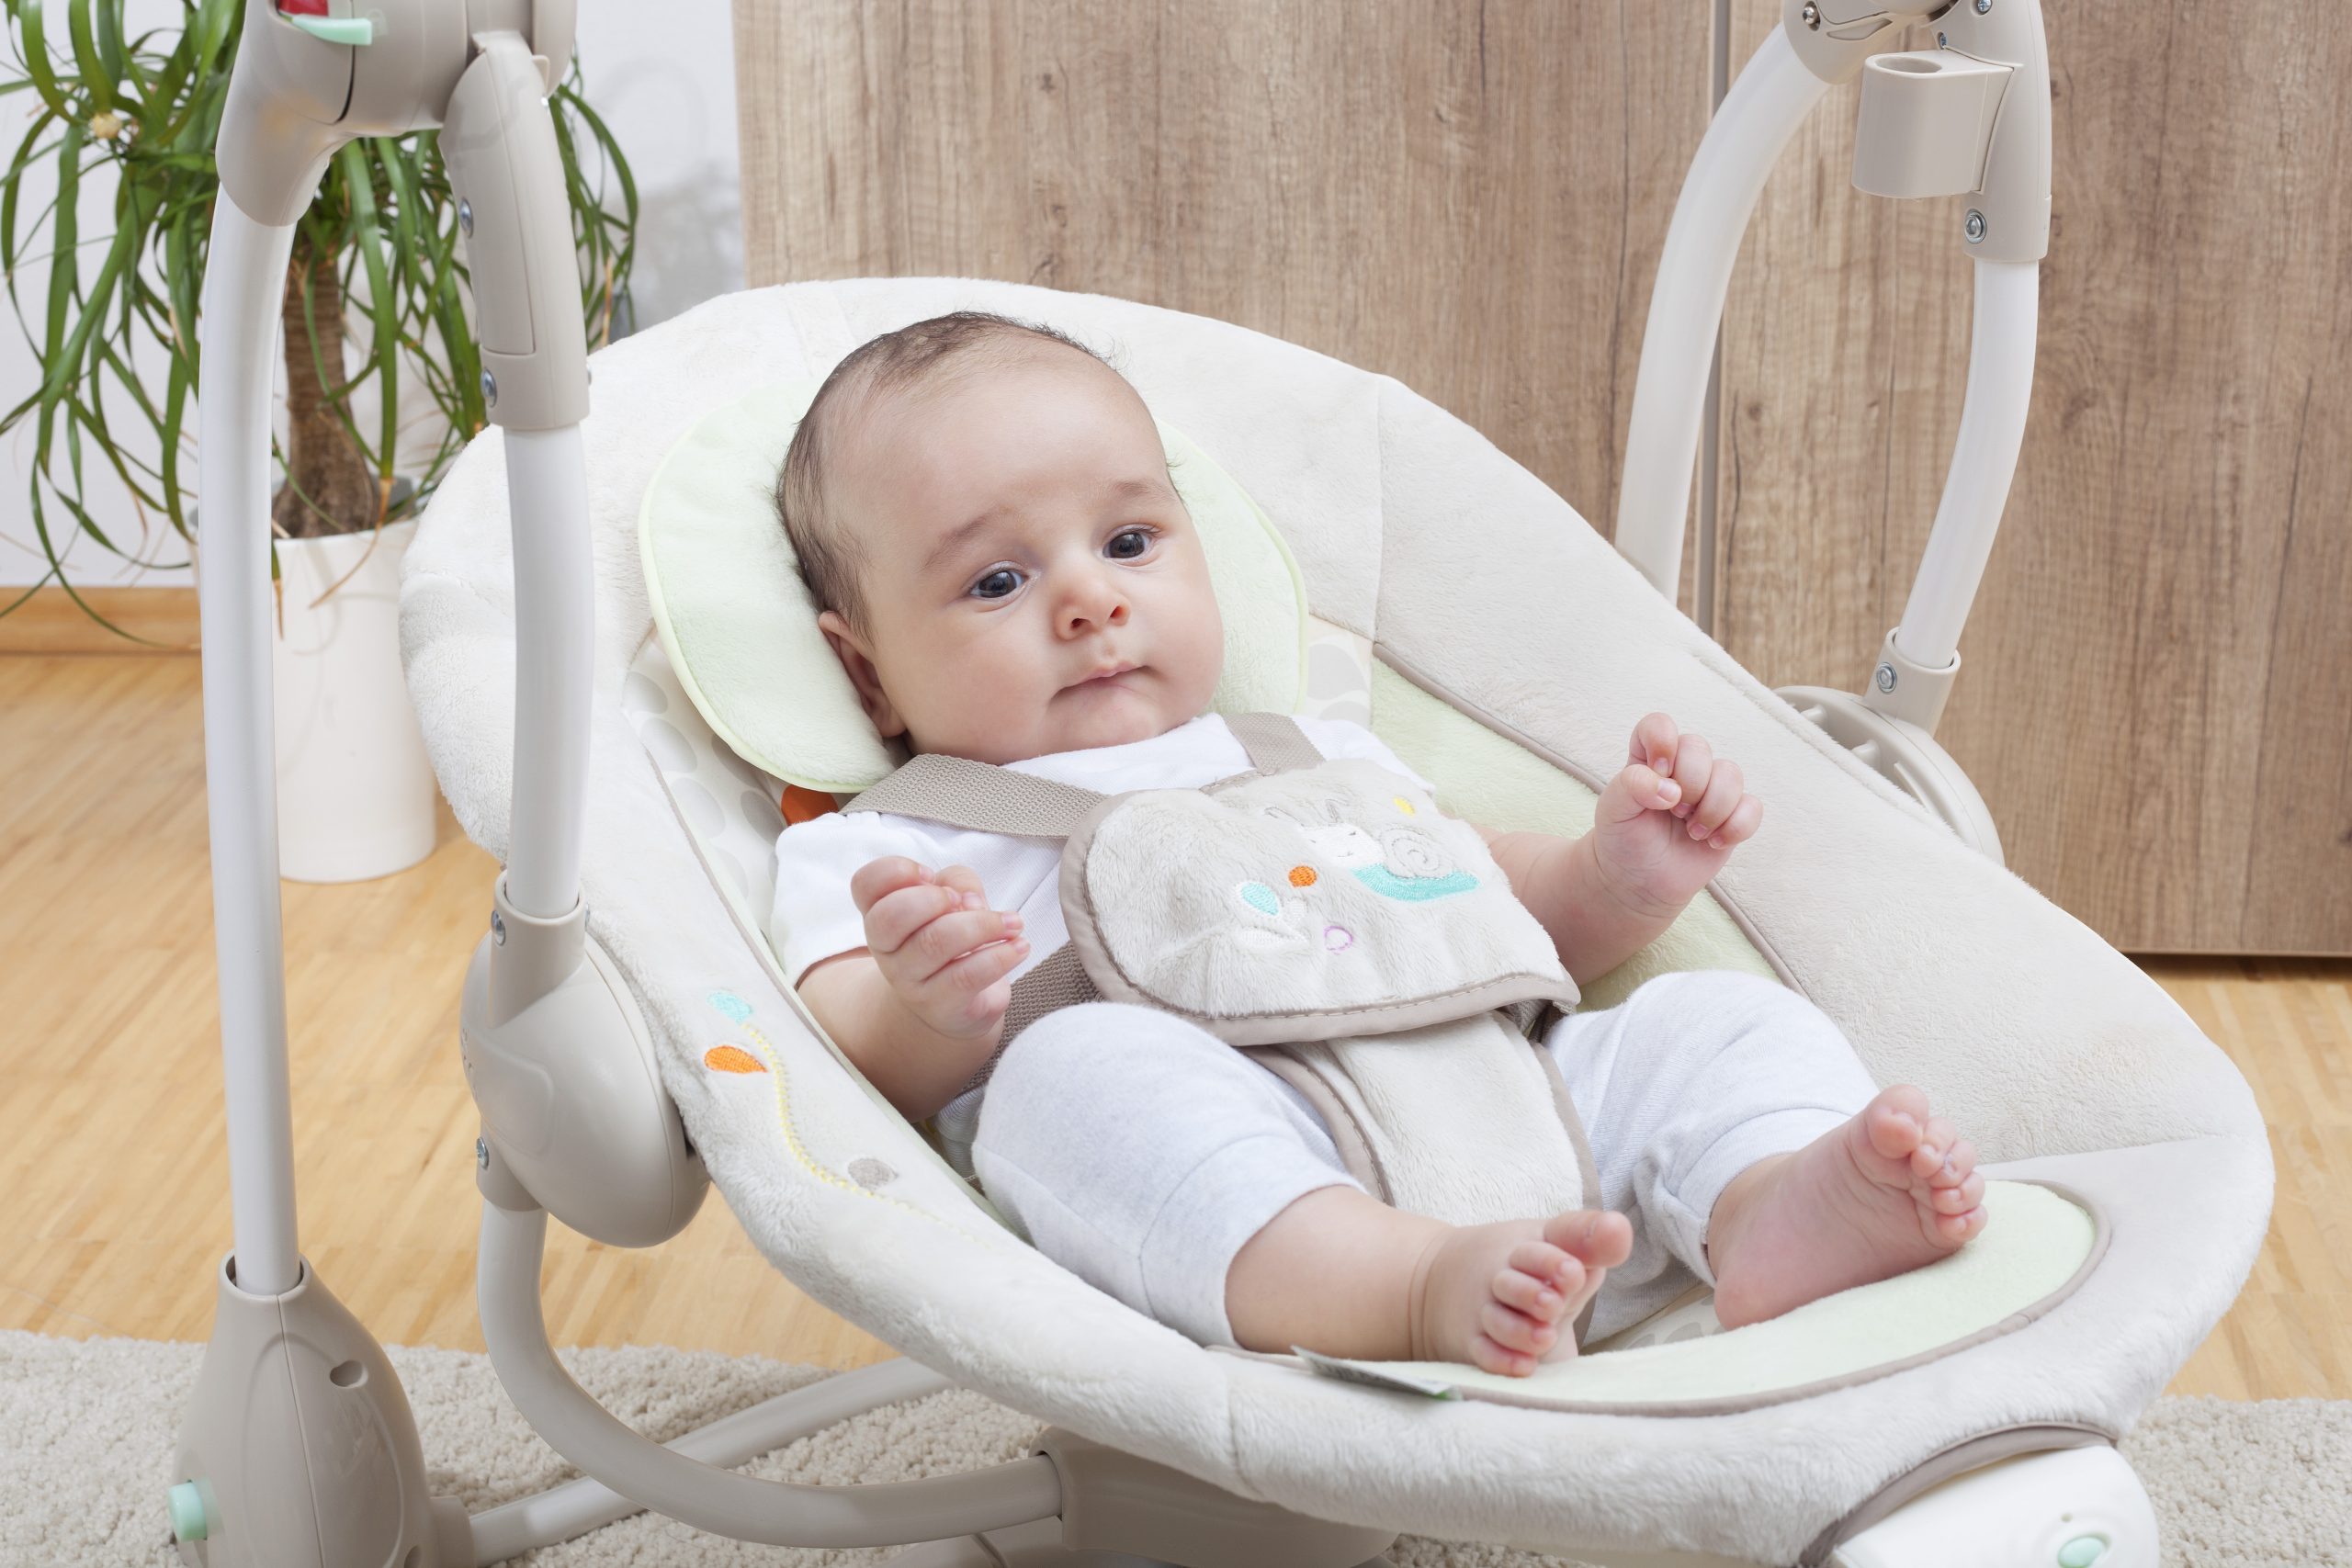 5 Most Awesome Baby Swings in 2021 – Your Baby Will Love This!